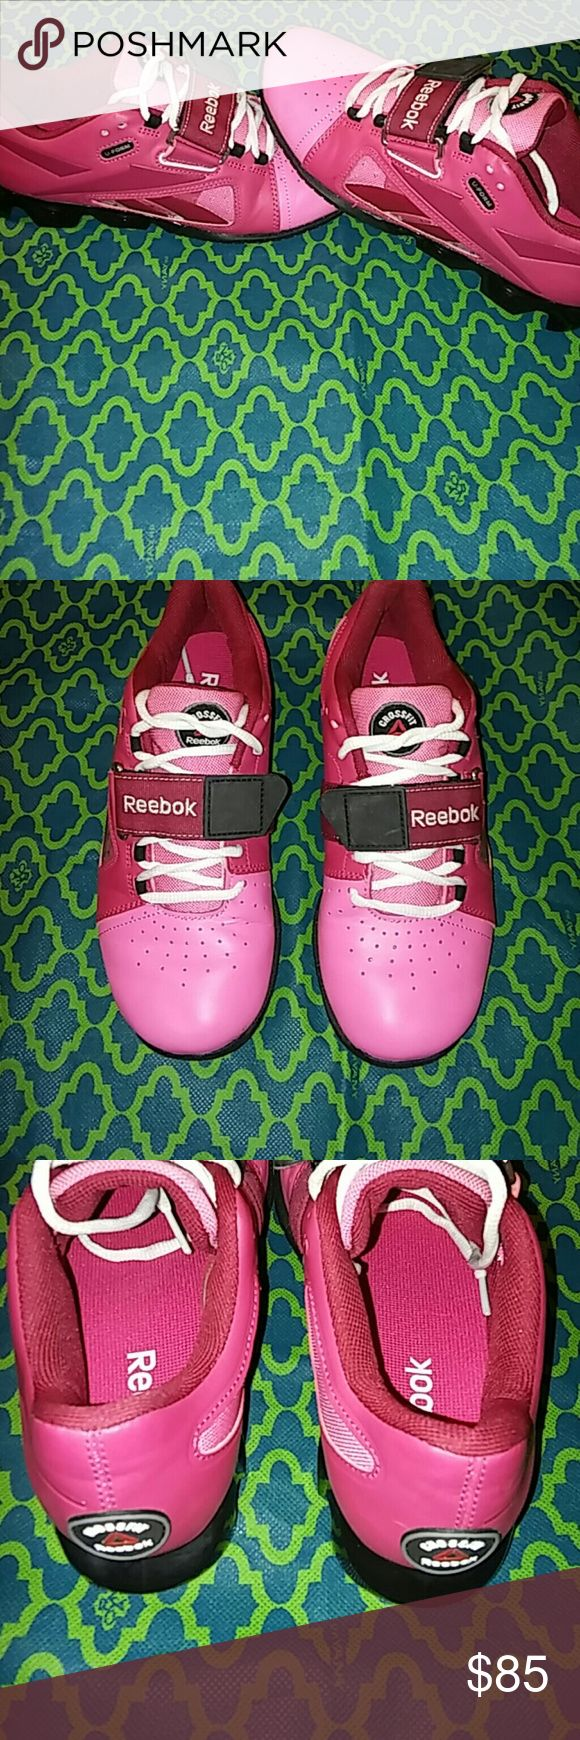 Reebok Shoes Gorgeous Reebok Crossfit Shoes, Leather and man made material. Reebok  Shoes Athletic